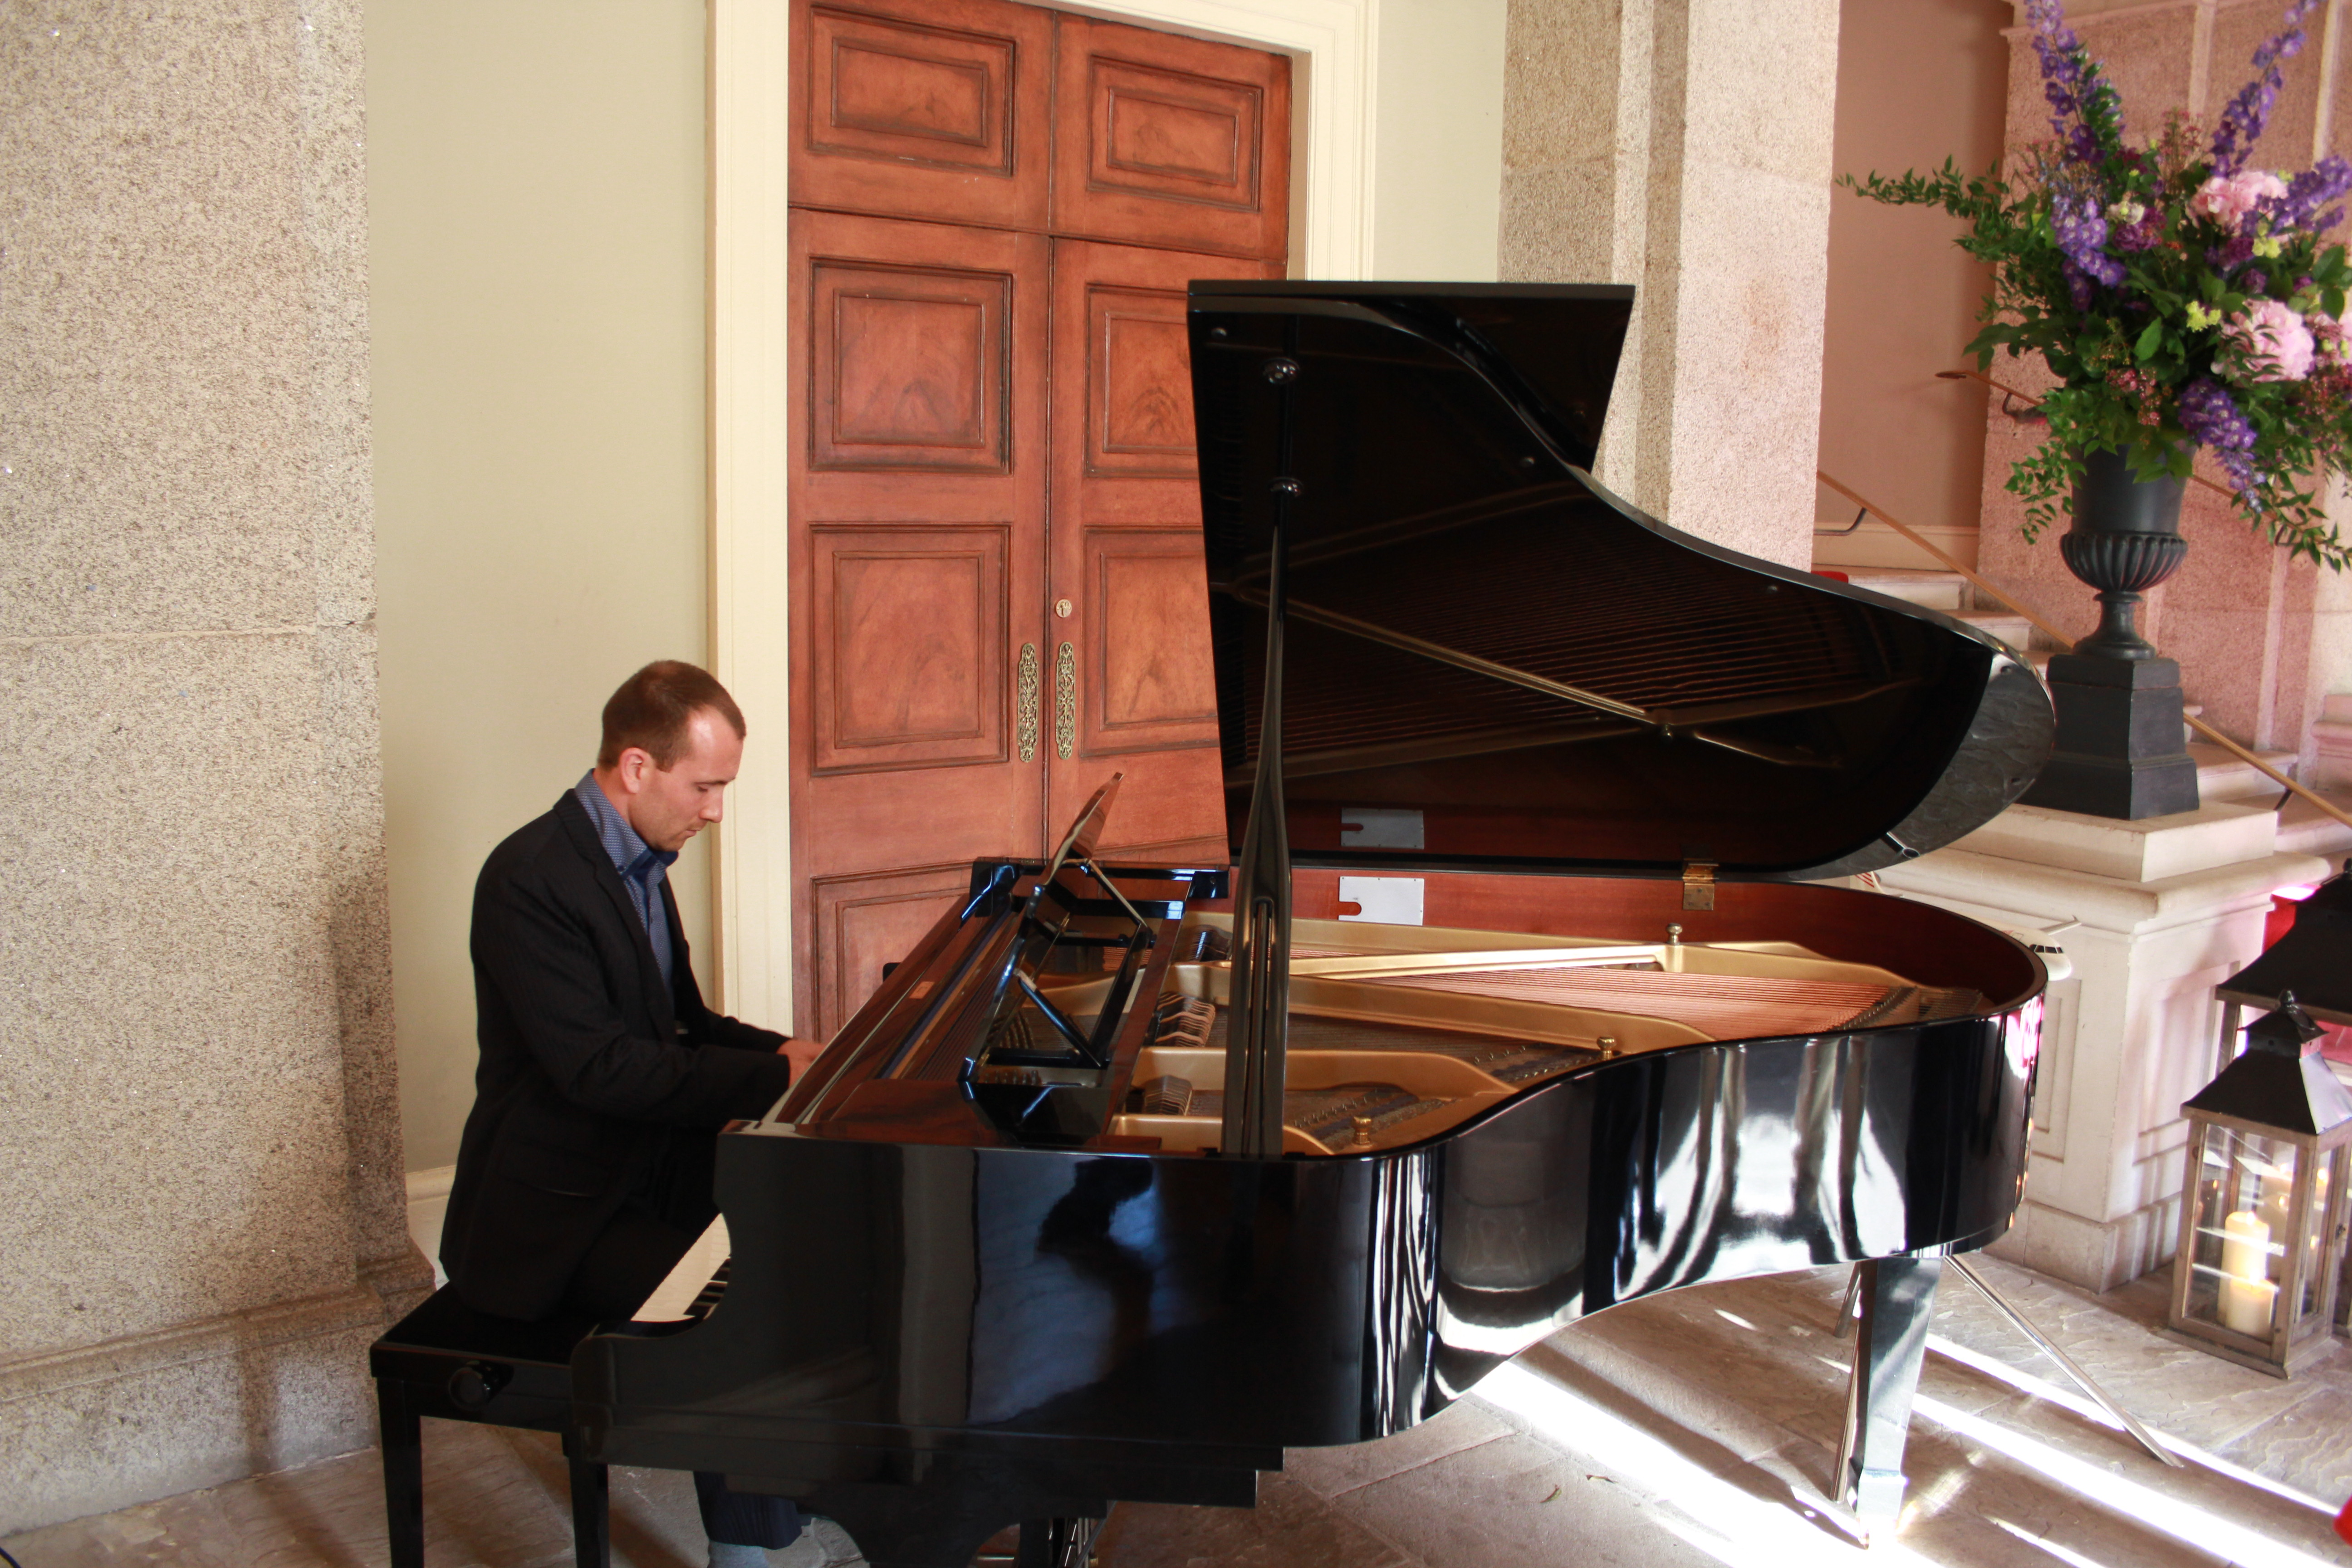 Joe Kenny Pianist playing grand piano at wedding drinks reception in Dublin